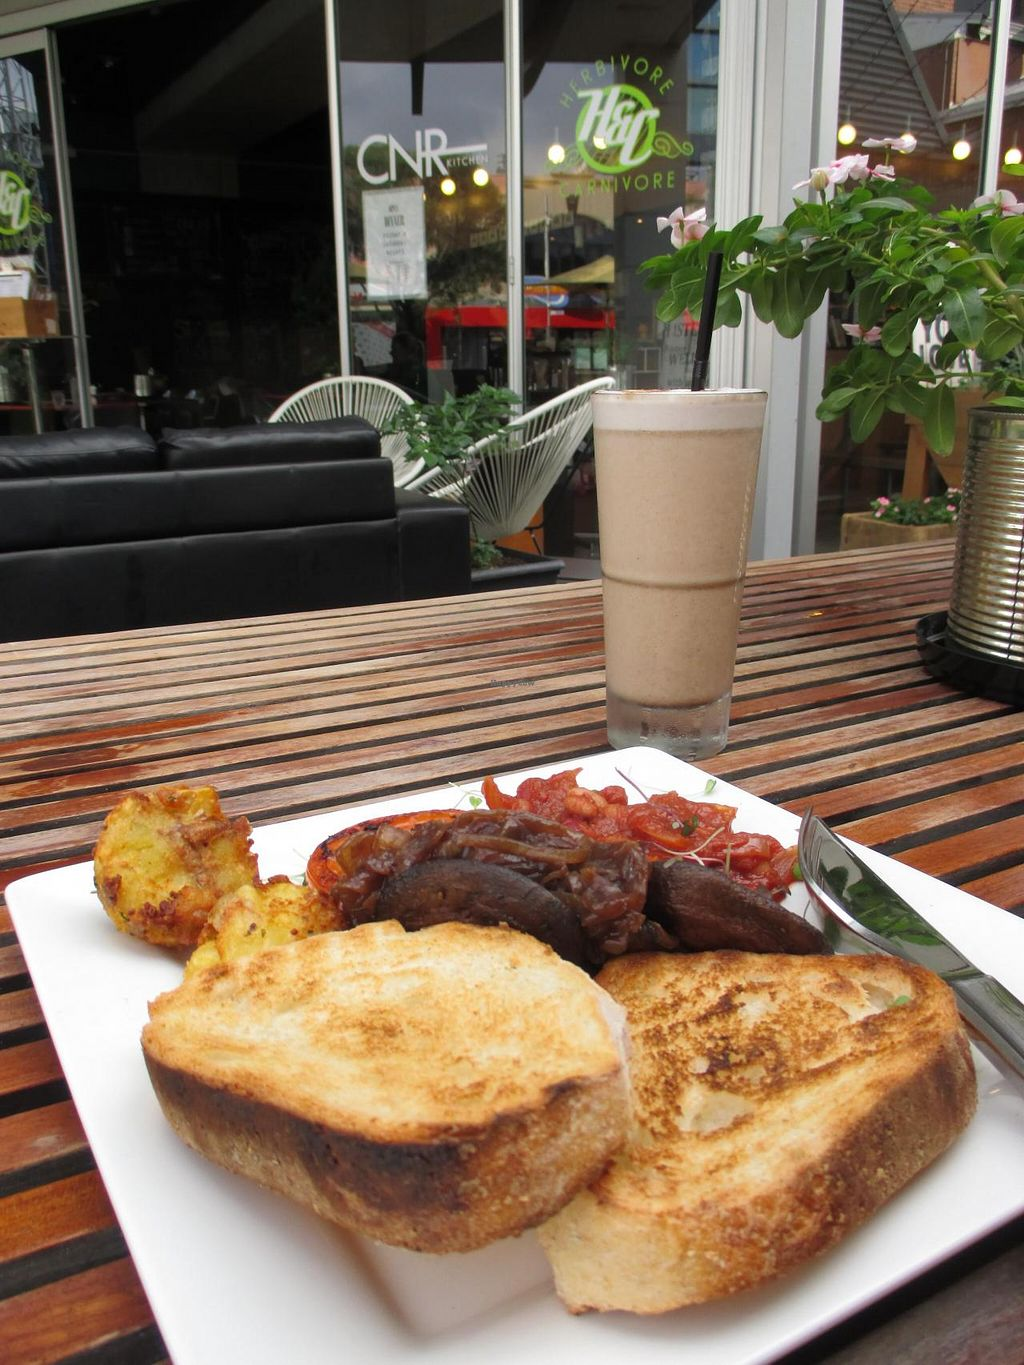 """Photo of CLOSED: CNR Cafe  by <a href=""""/members/profile/alia_801"""">alia_801</a> <br/>Big vegan breakfast and chai latte smoothie - yum! <br/> April 27, 2014  - <a href='/contact/abuse/image/28768/68724'>Report</a>"""